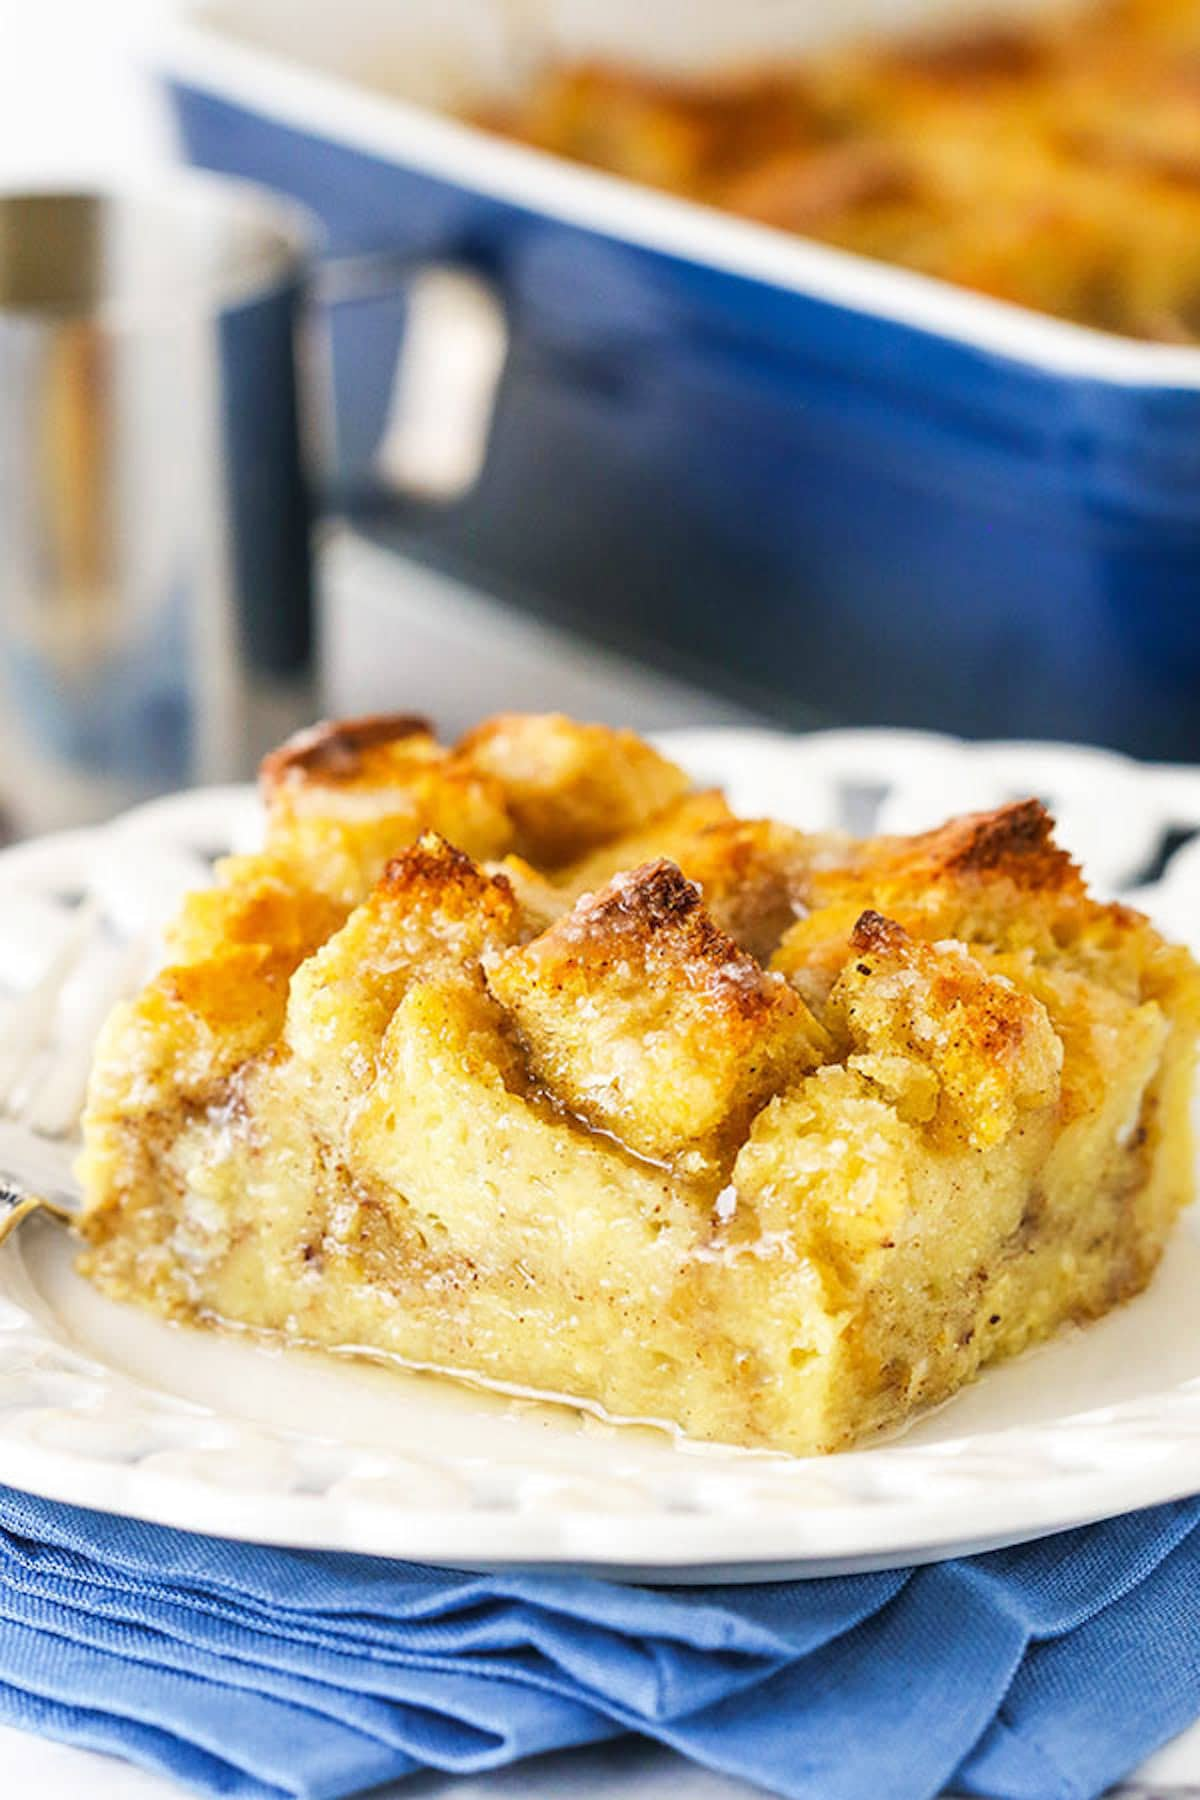 A Helping of Bread Pudding Sitting on a Plate on Top of a Blue Napkin